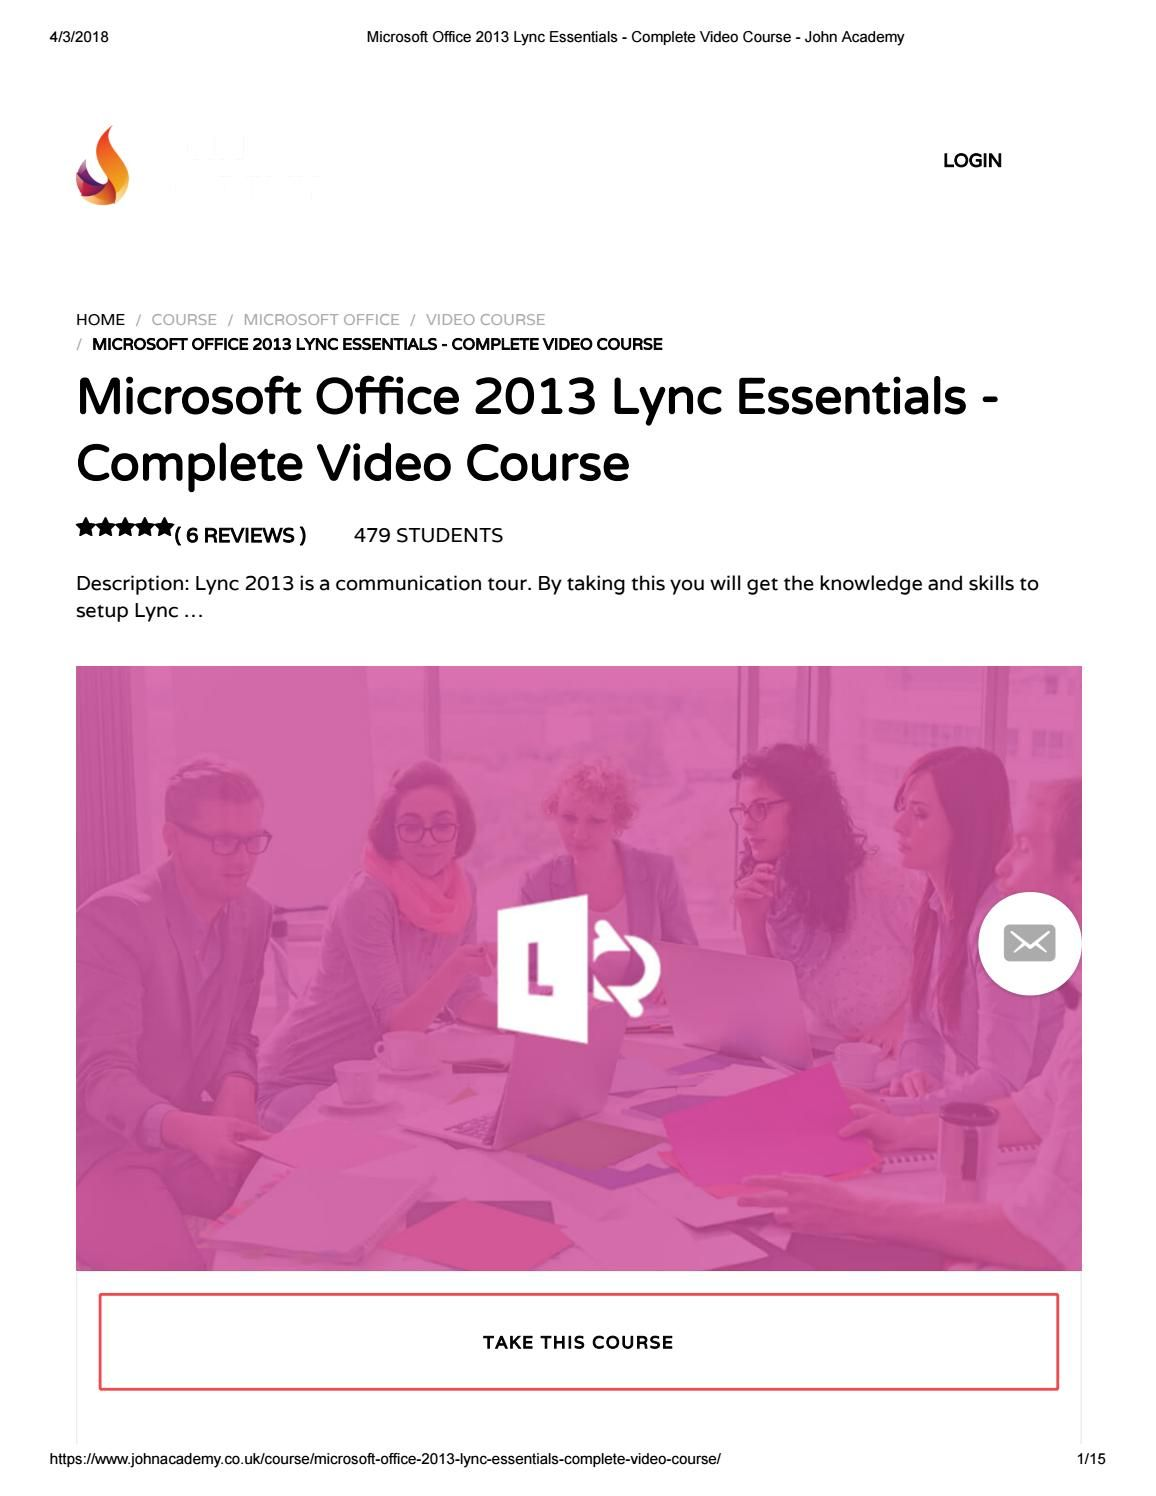 Microsoft office 2013 lync essentials complete video course